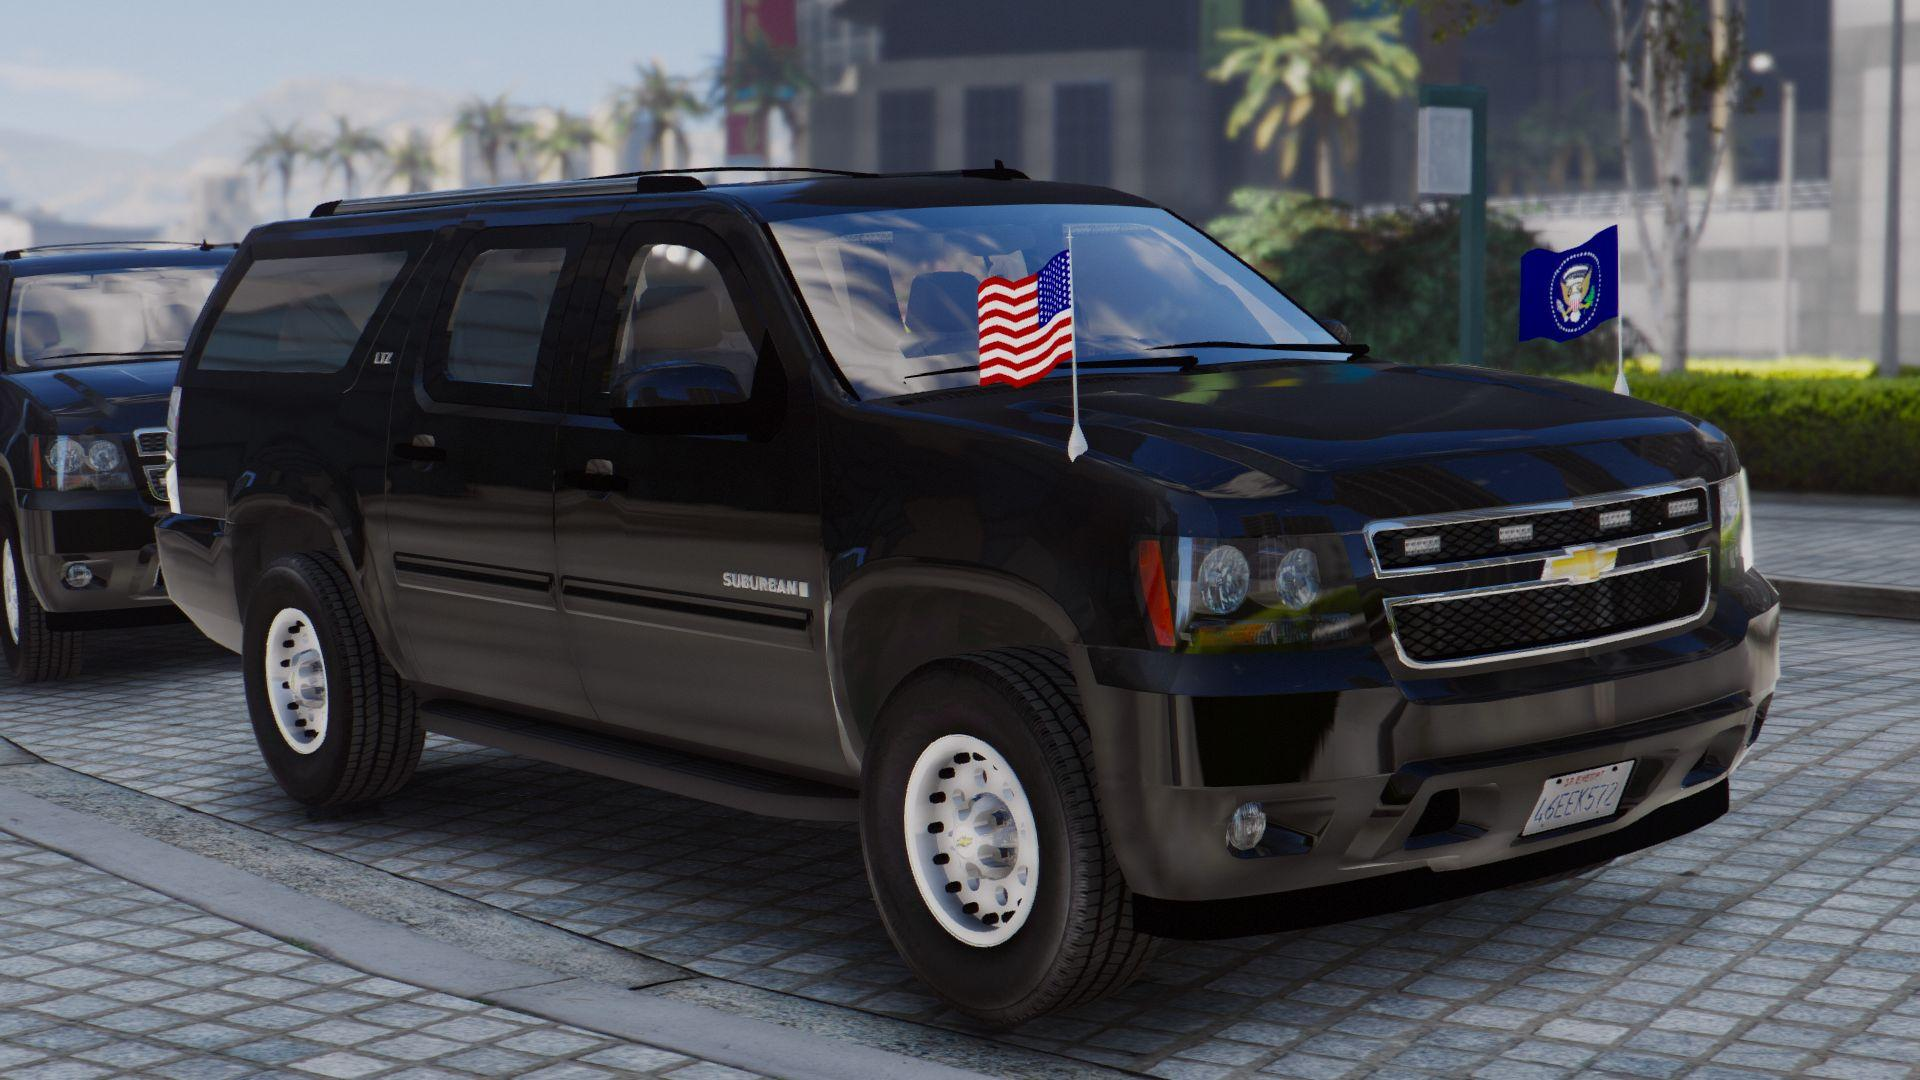 Chevrolet Tahoe 2019 >> Chevrolet Suburban Secret Service [Add-On | Wipers] - GTA5-Mods.com